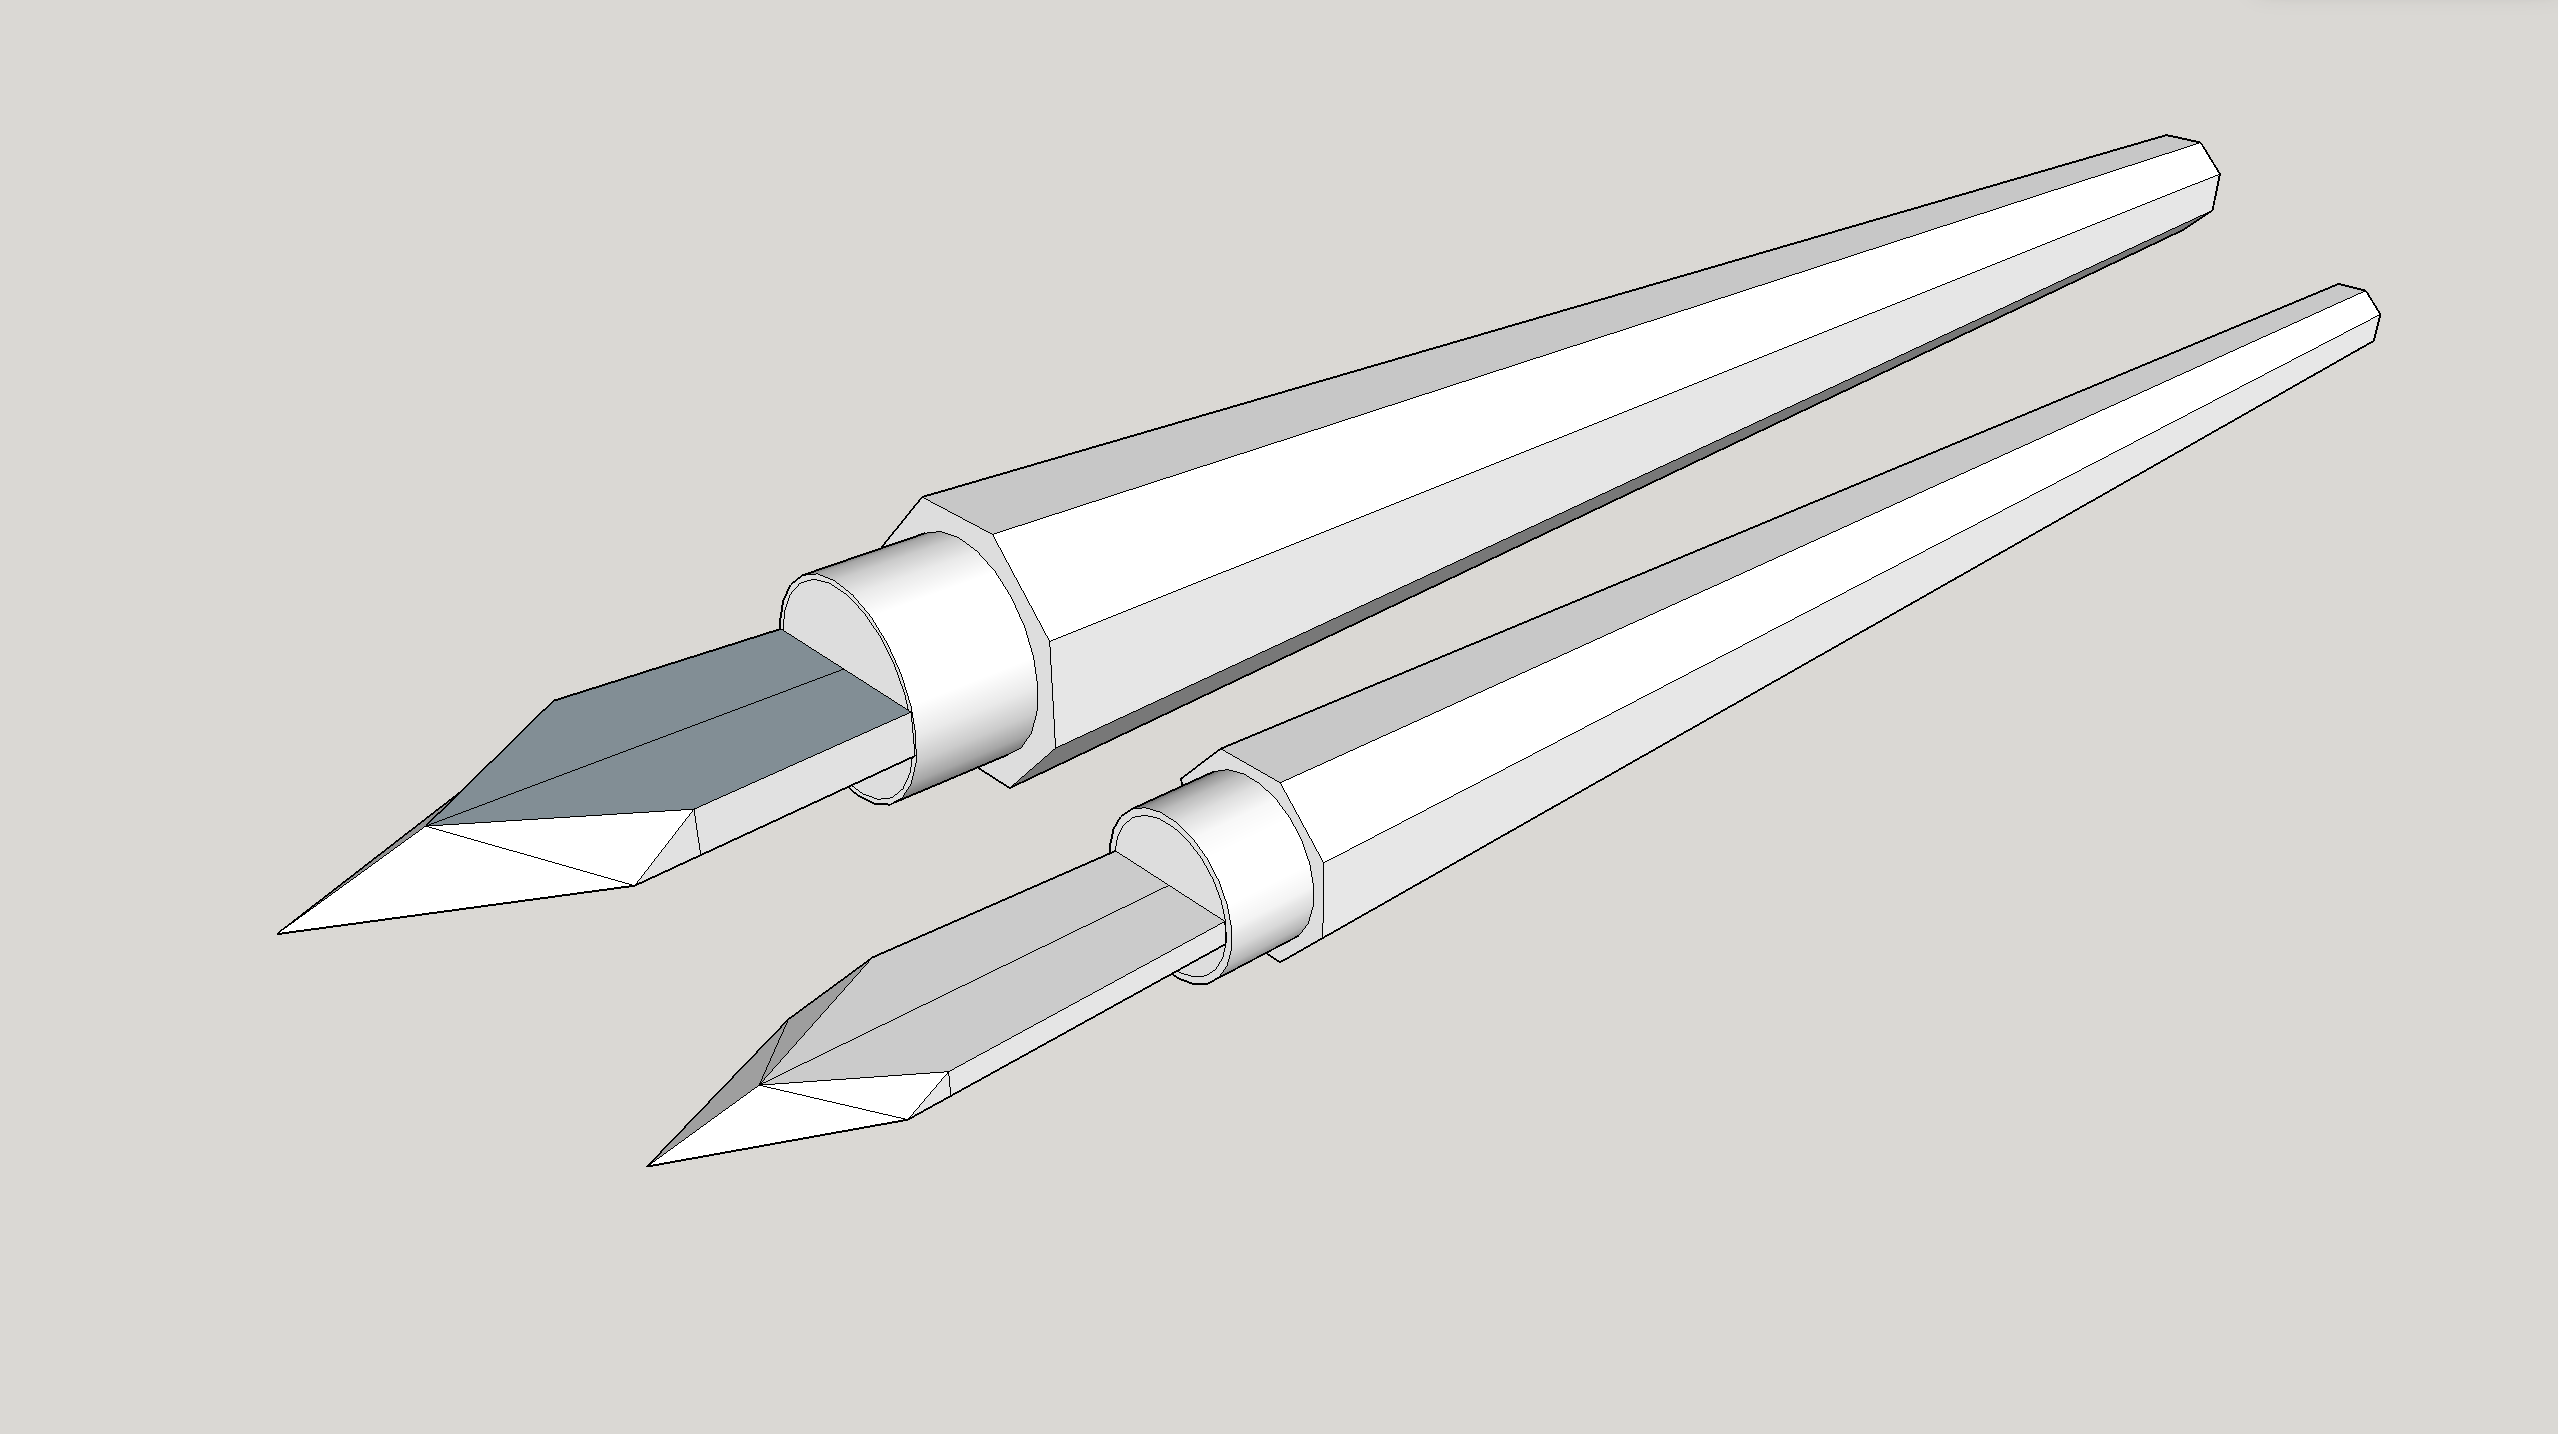 A sketchup 3D rendering of the knives.